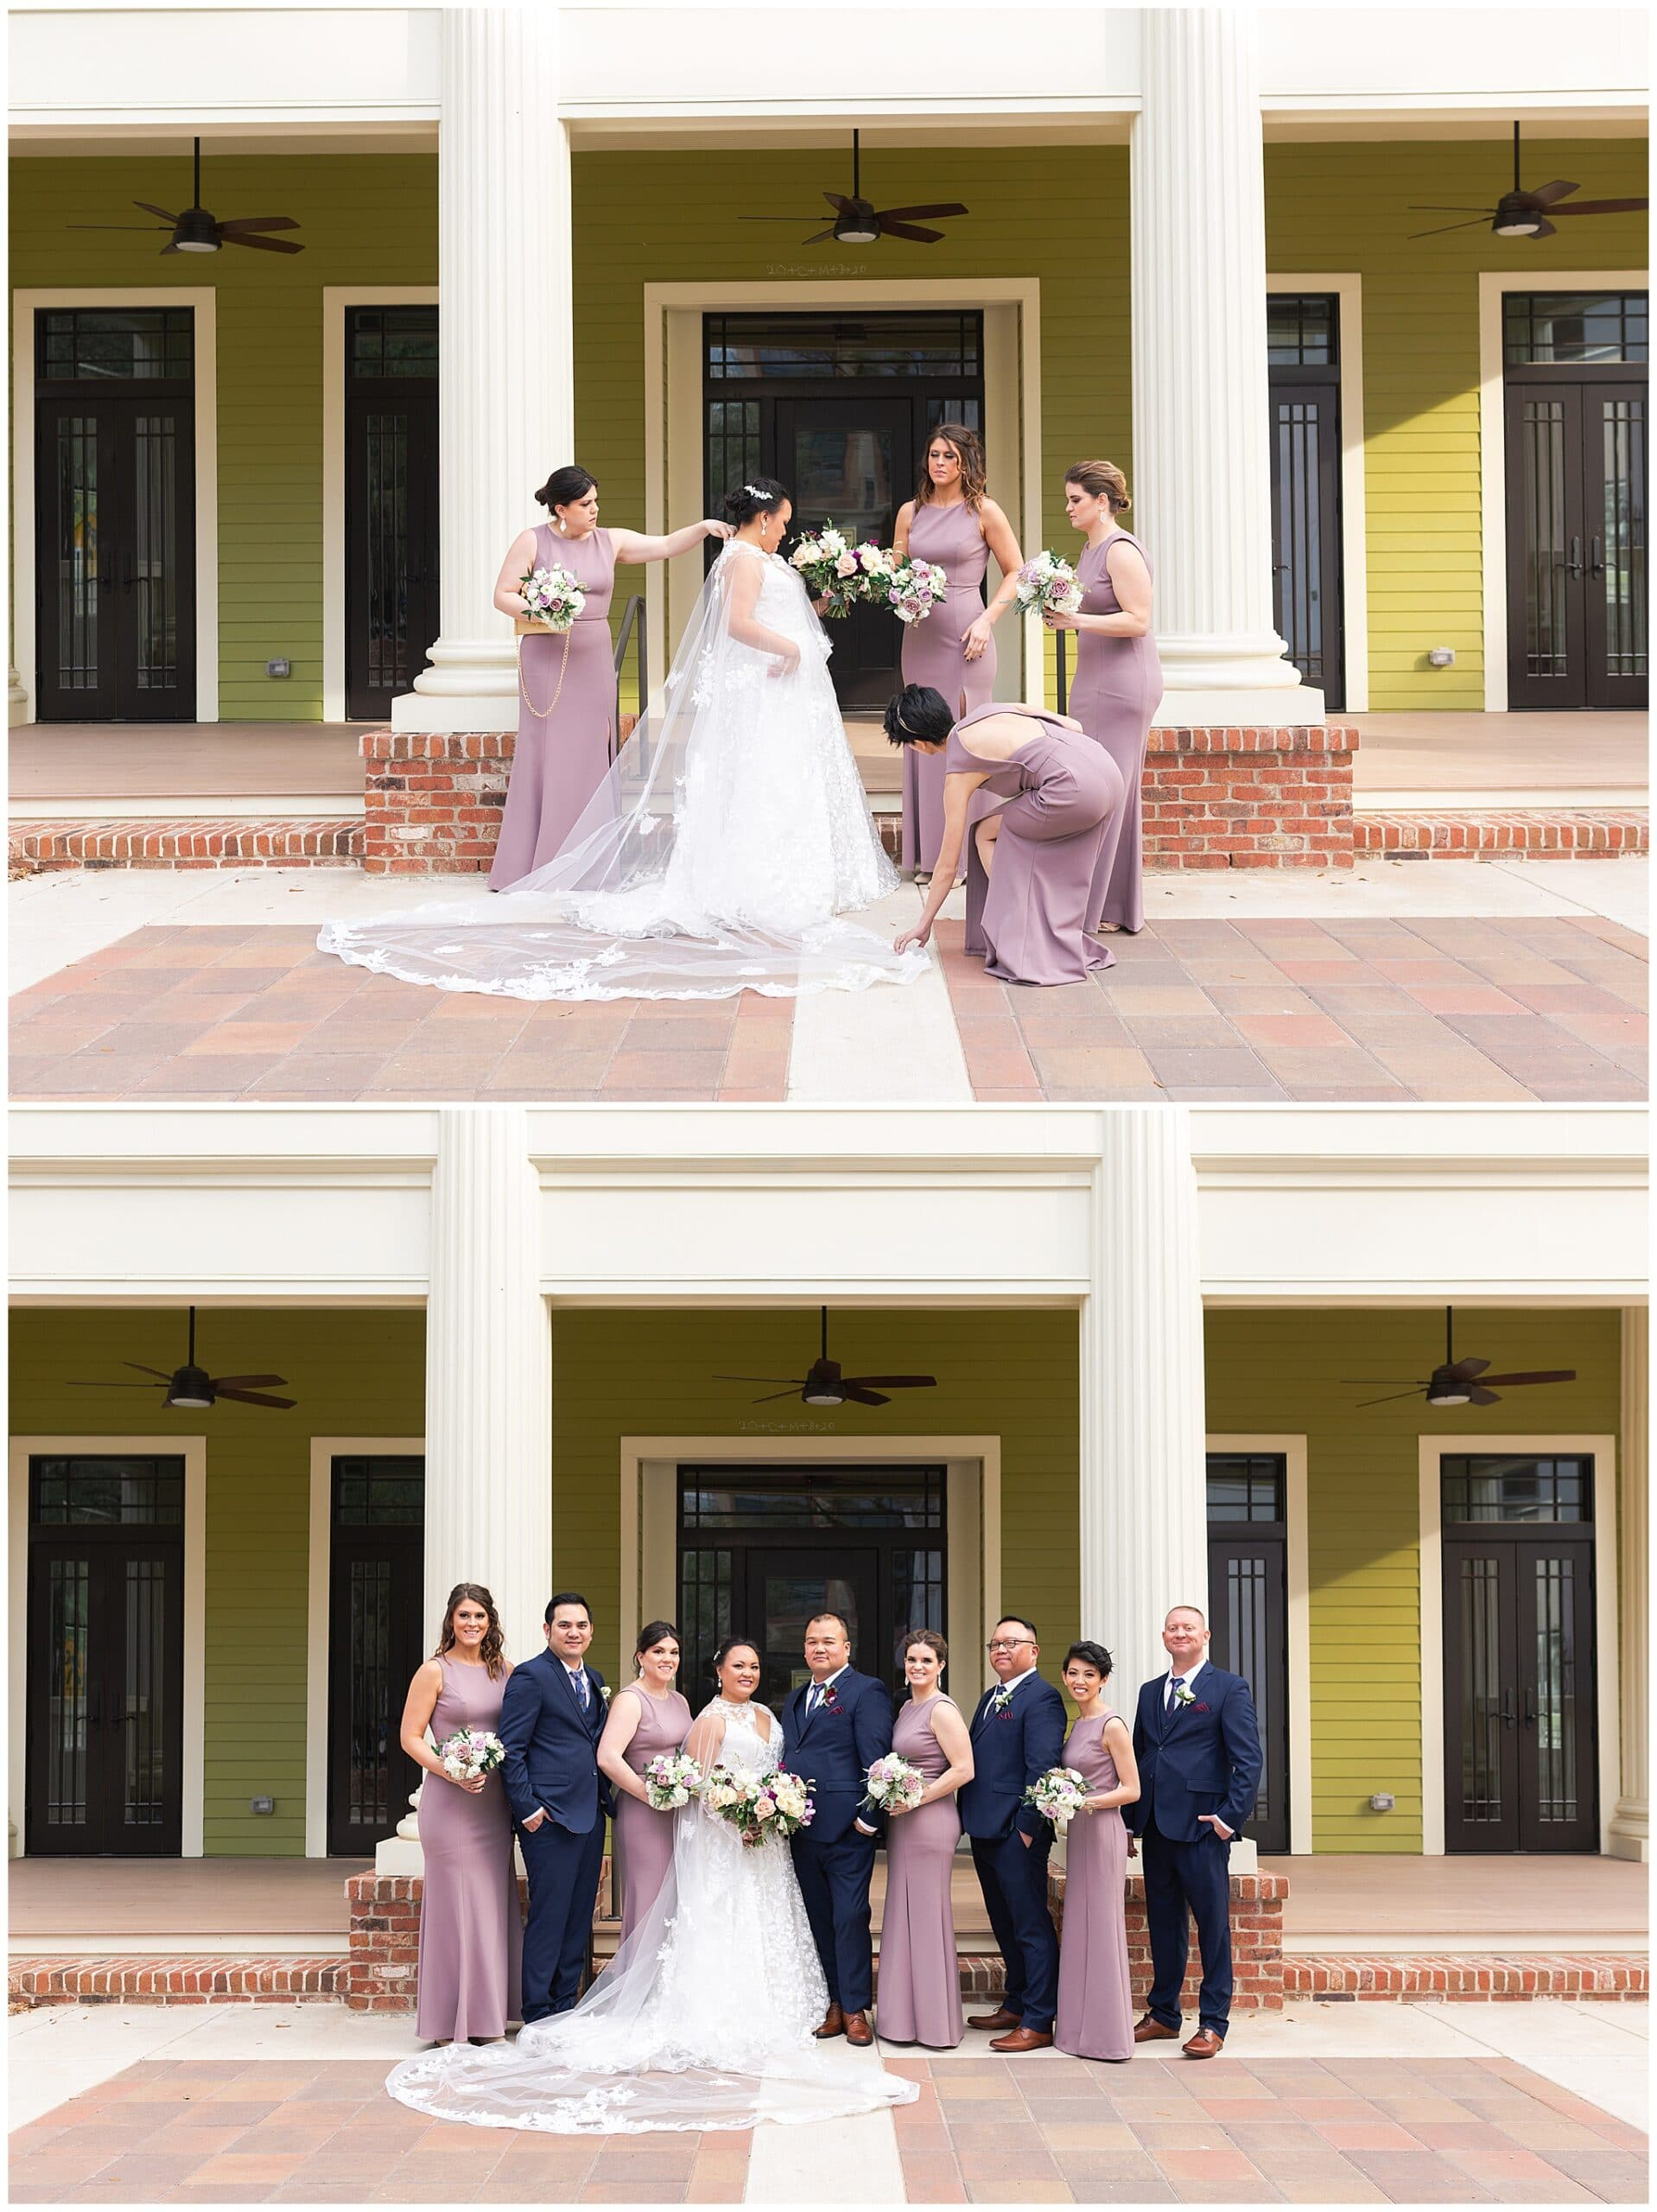 wedding party portraits at Annunciation Catholic Church in Houston TX by Swish and Click Photography